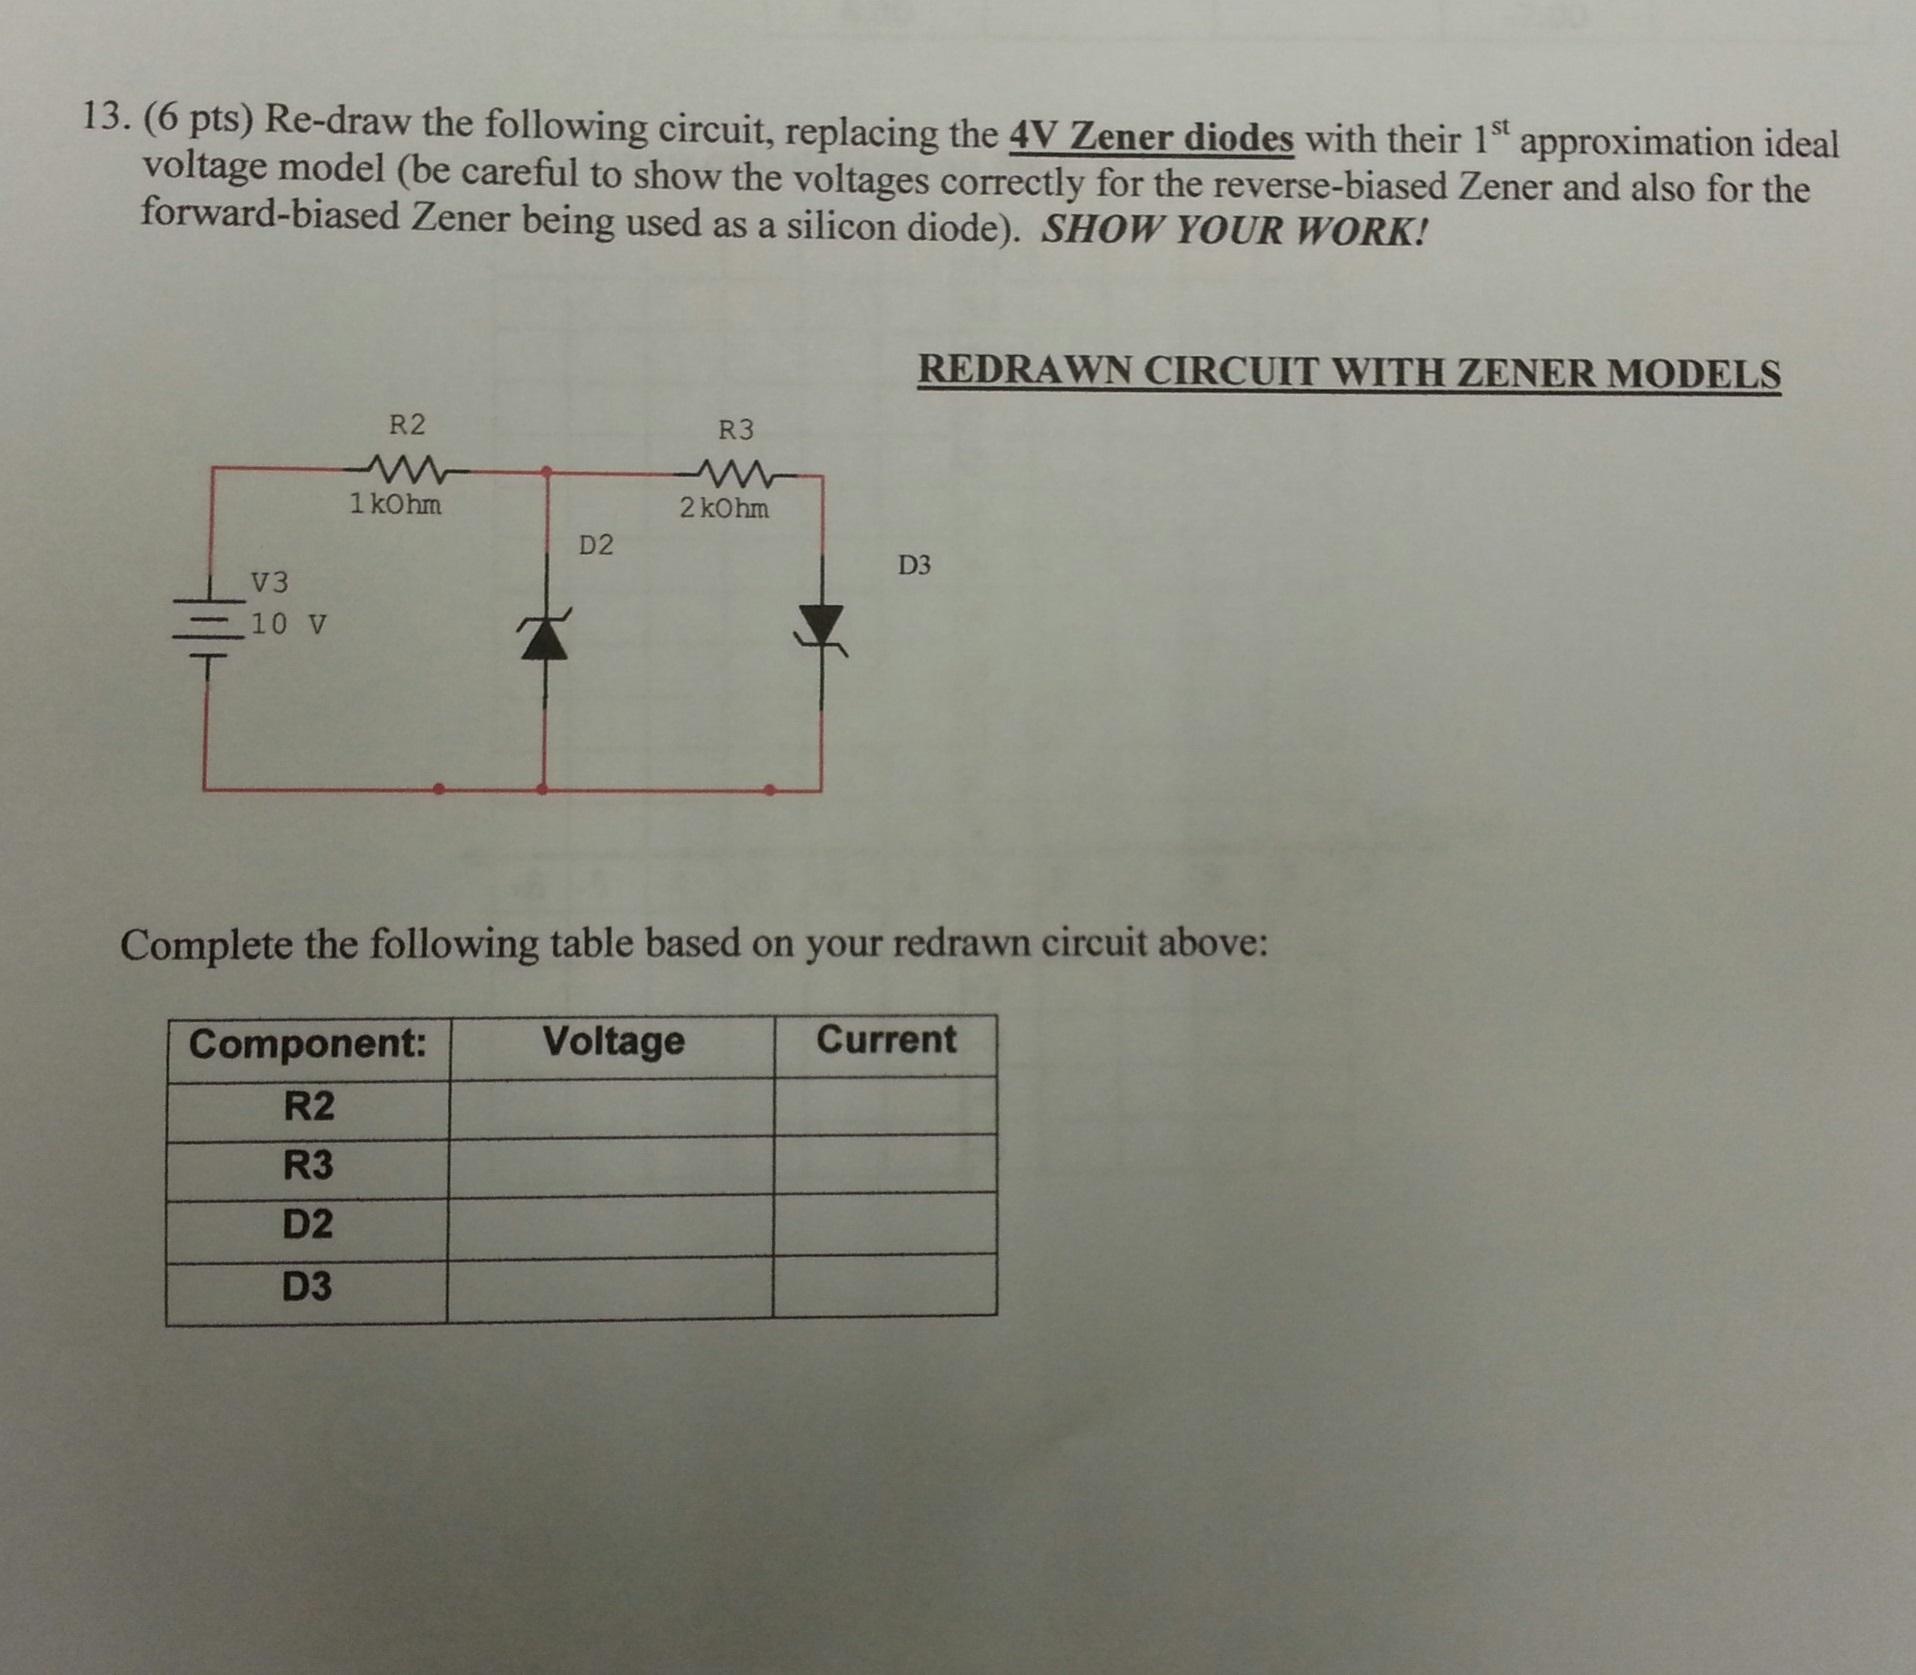 Re-draw the following circuit, replacing the 4V Ze